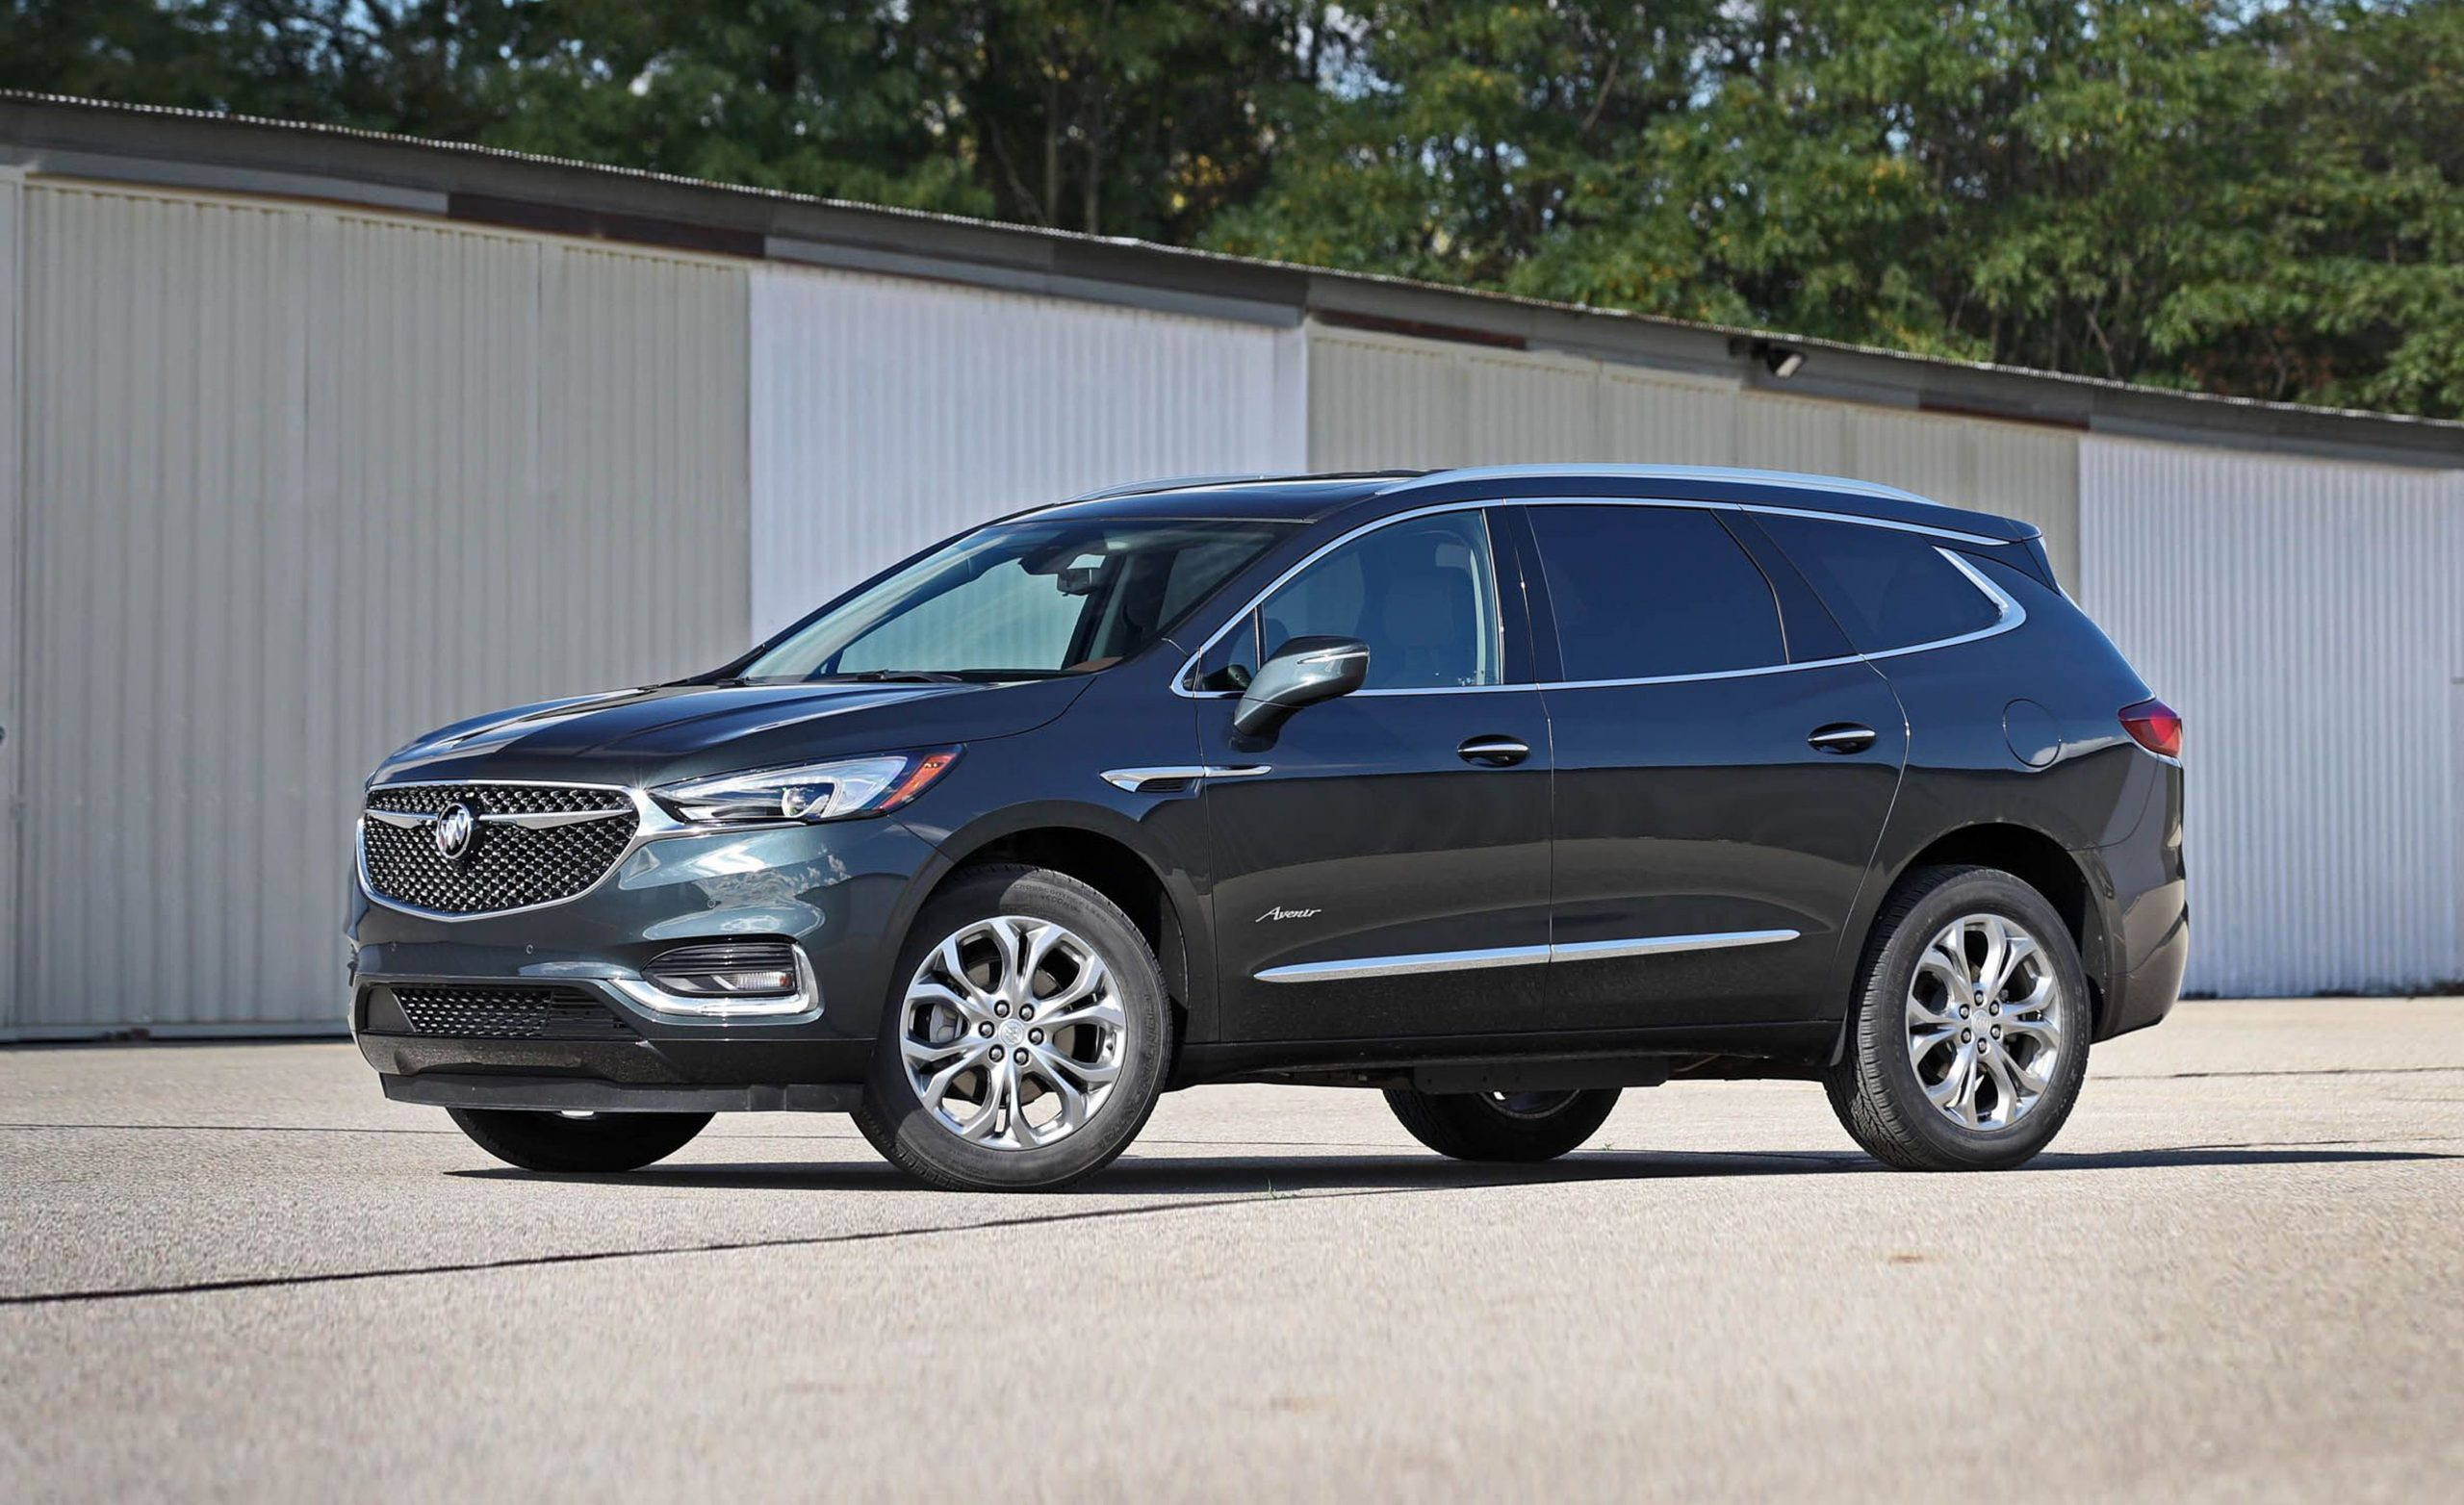 2019 Buick Enclave Review, Pricing, And Specs 2021 Buick Enclave Length, Leather, Lease Price